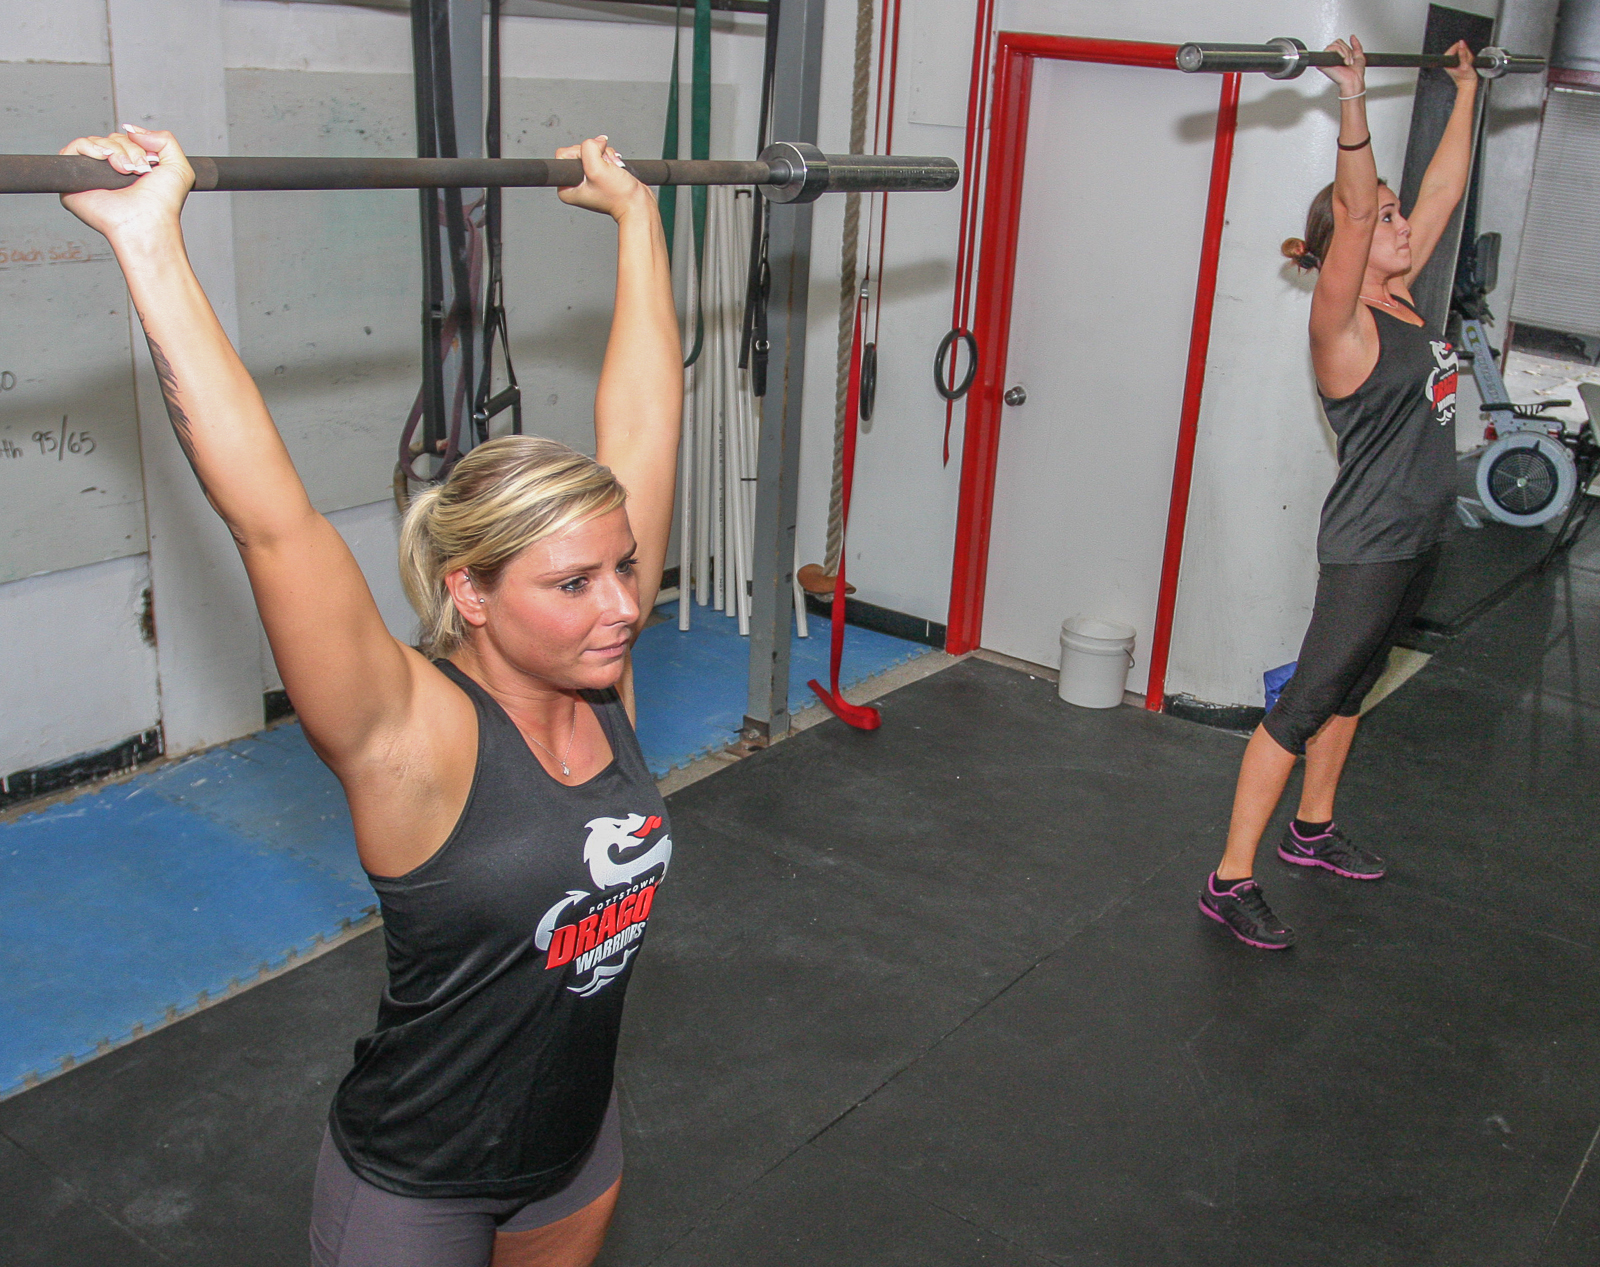 photos recovering addicts maintain sobriety with crossfit fitness